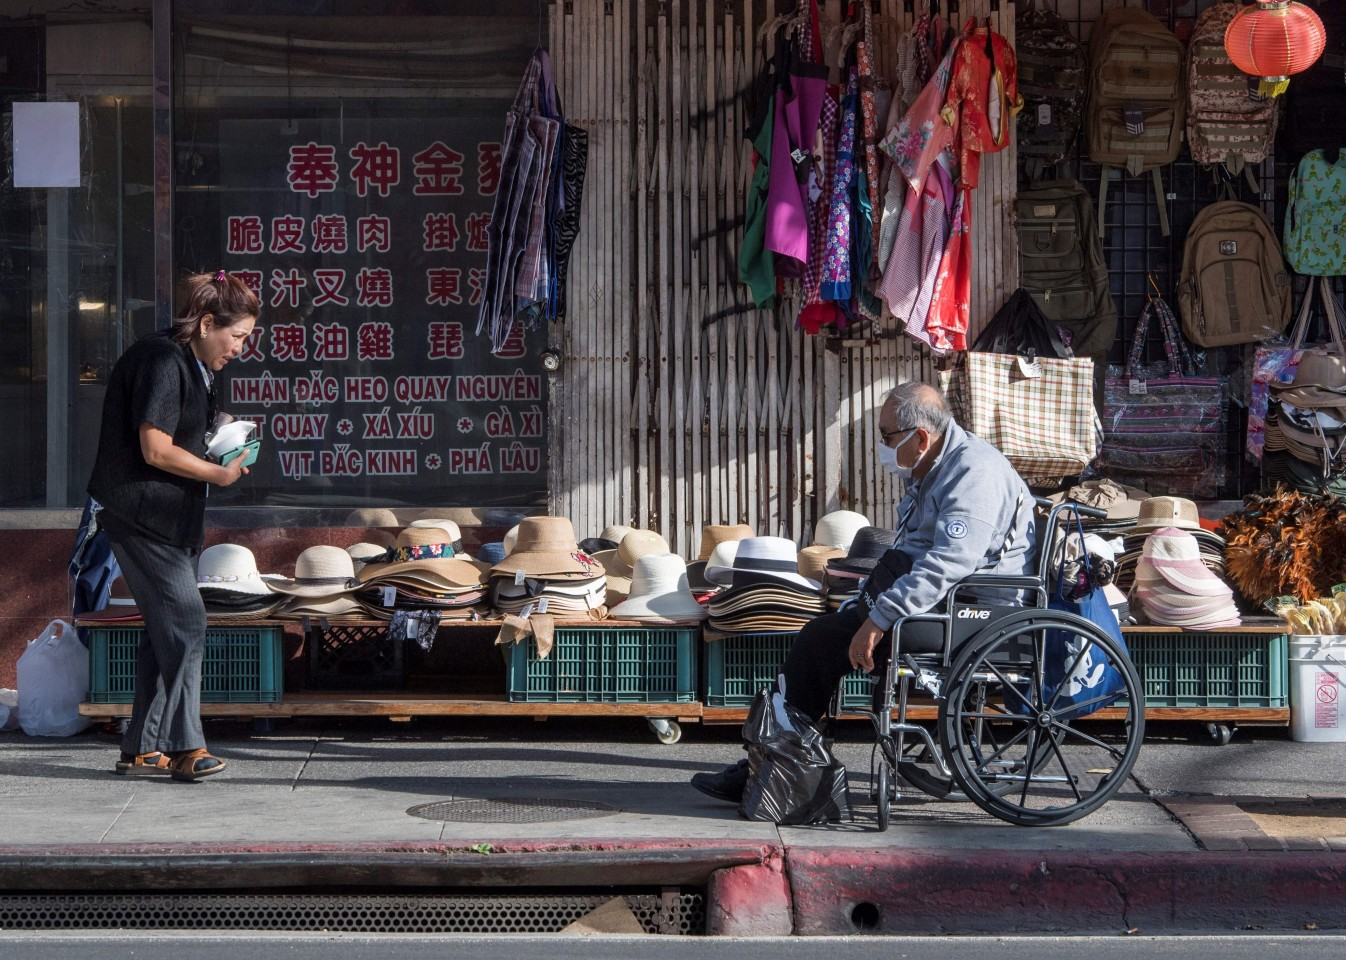 This file photo taken on 13 February 2020 shows shoppers at a deserted Los Angeles Chinatown as most stay away due to fear of the novel coronavirus, Covid-19. Chinatowns in Western countries have fallen quiet and businesses are struggling to survive as fears over the deadly novel coronavirus outbreak ripple around the world. (Mark Ralston/AFP)